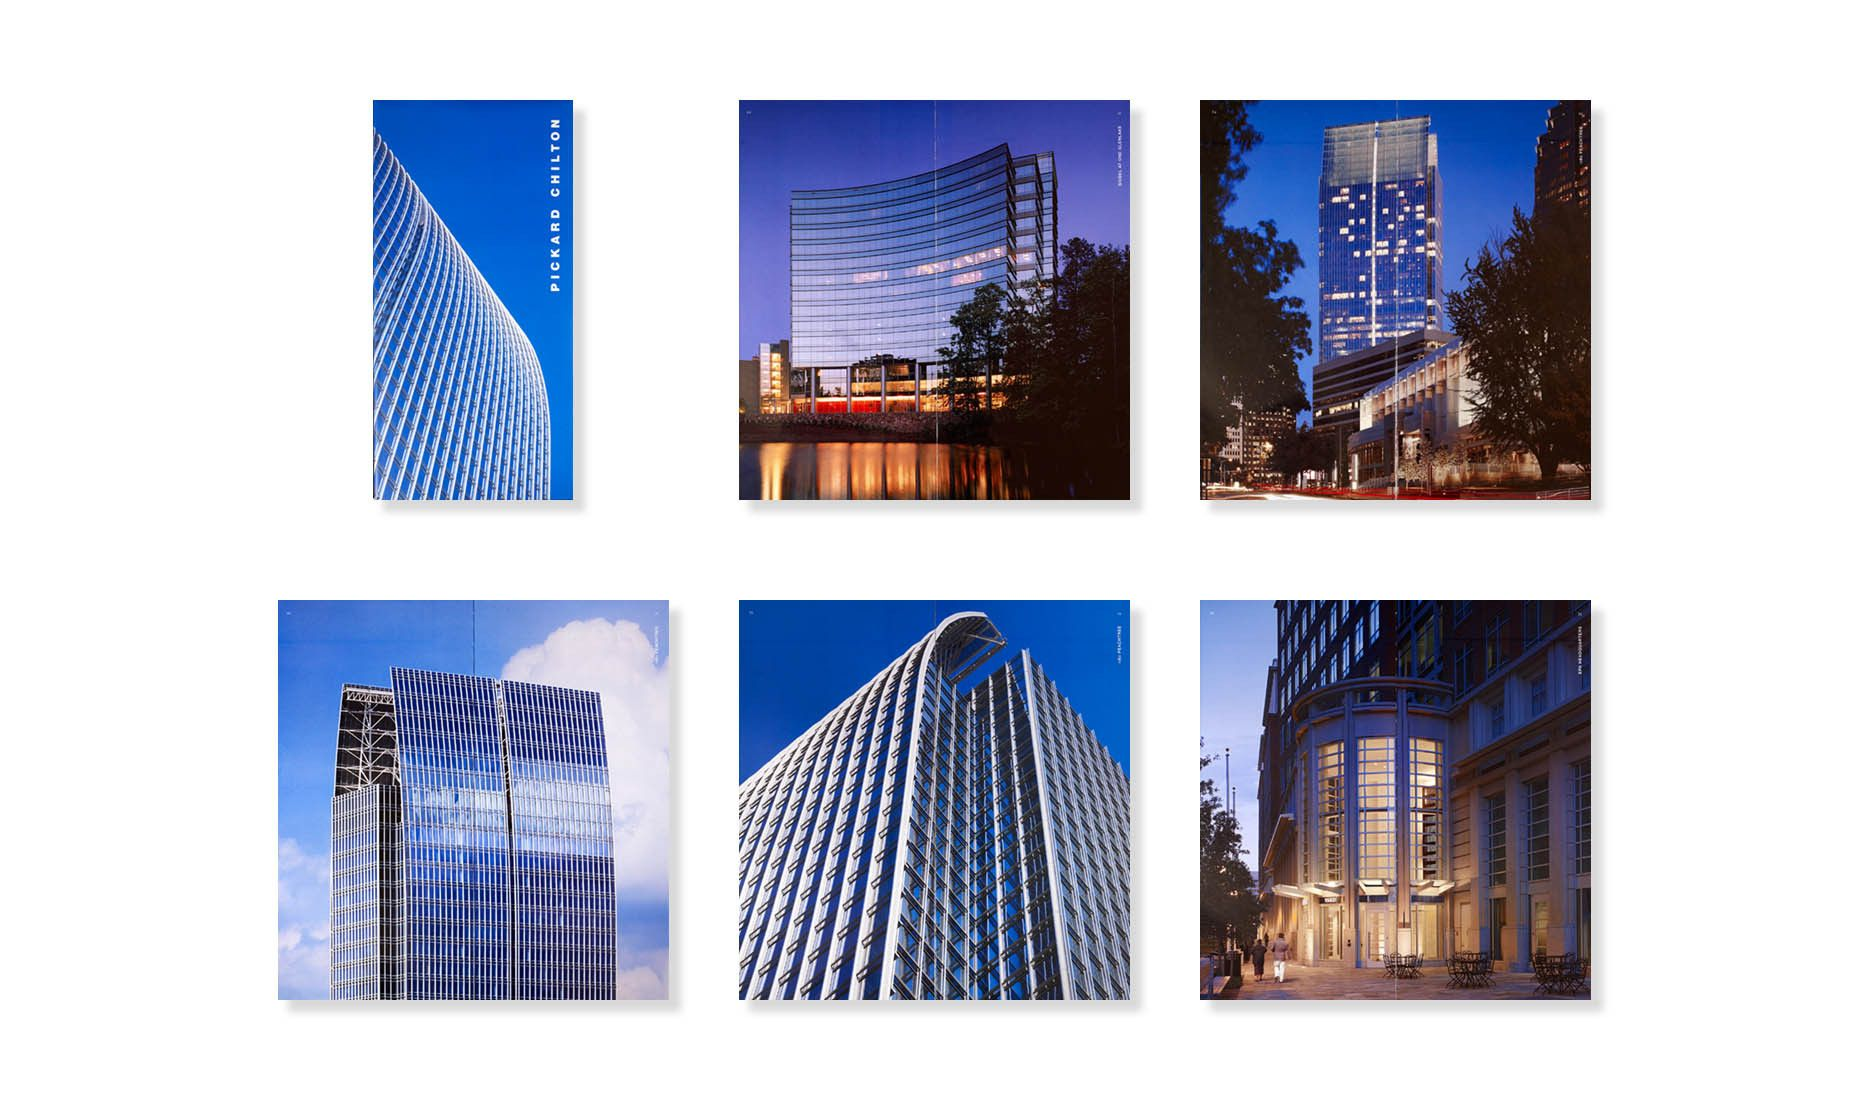 PICKARD CHILTON: BUILDINGS & PROJECTS . 9 SQUARE EDITIONS . CONTRIBUTING PHOTOGRAPHER